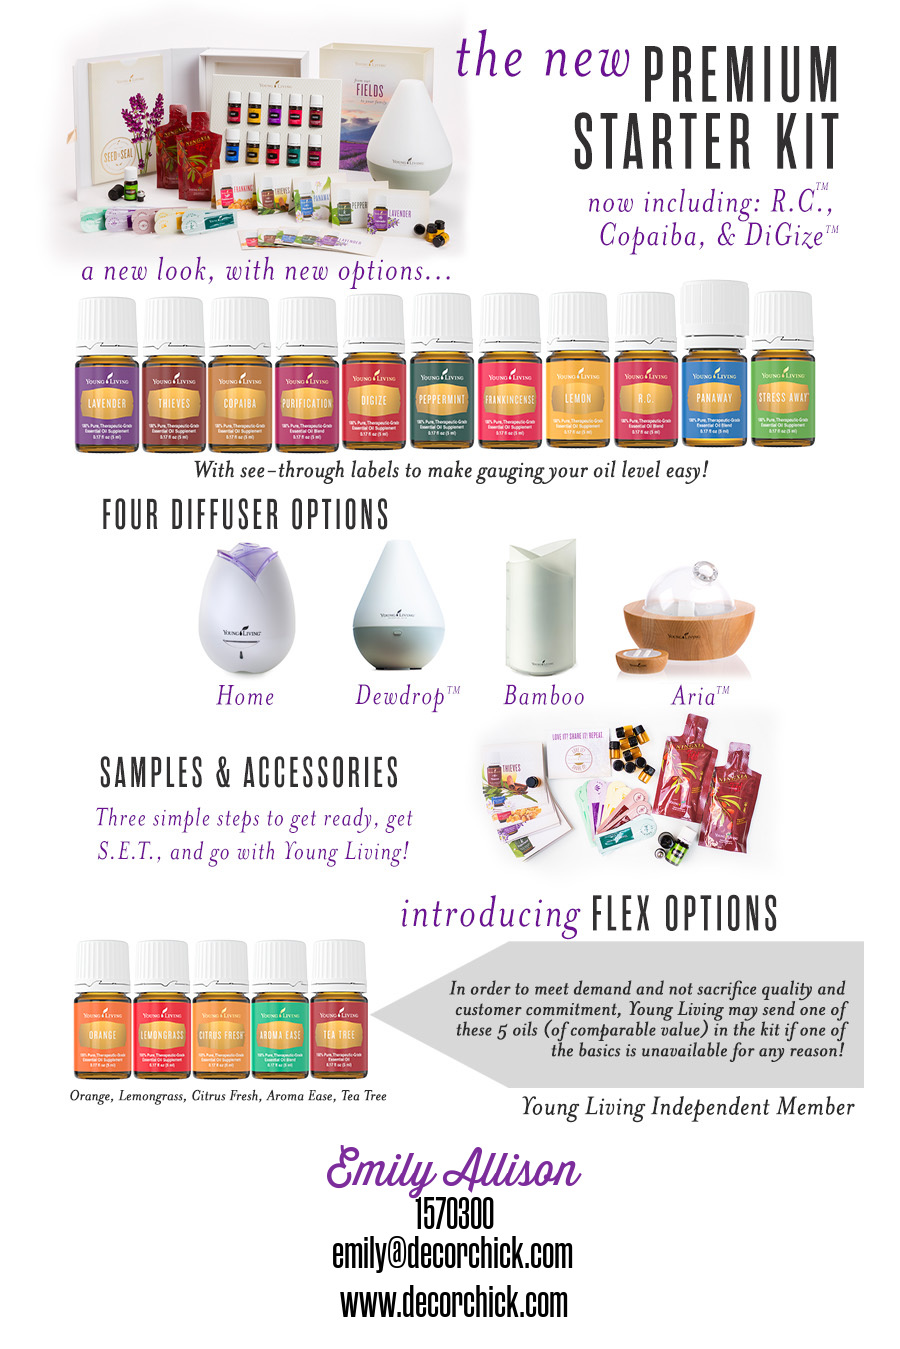 New Young Living Premium Starter Kit | Decorchick!®